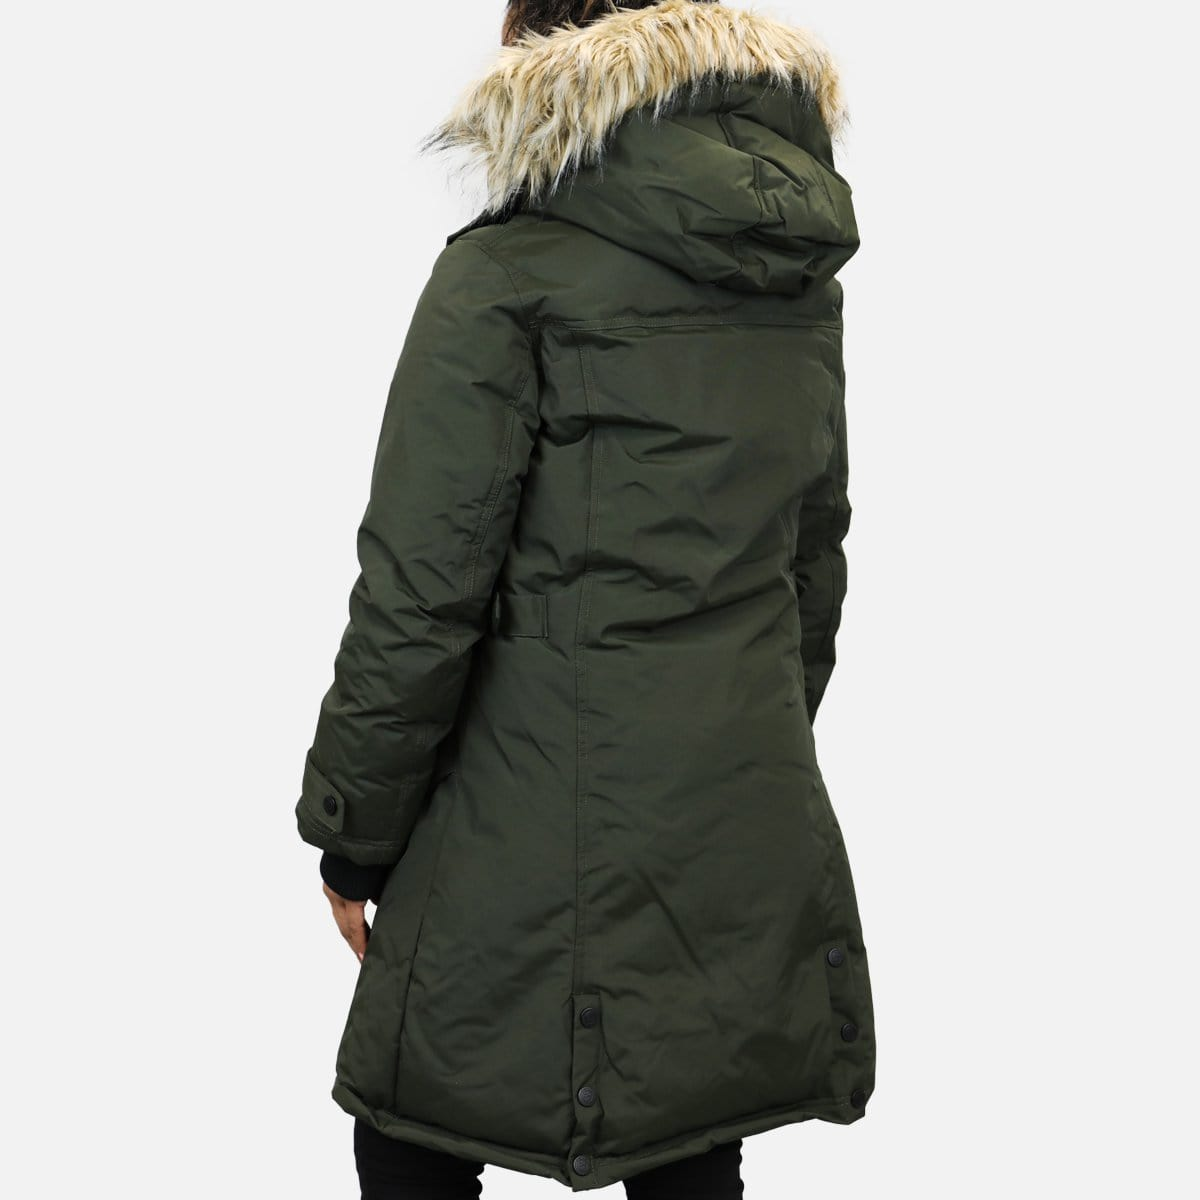 Canada Weather Gear Parka Fur Hoodie (Olive)